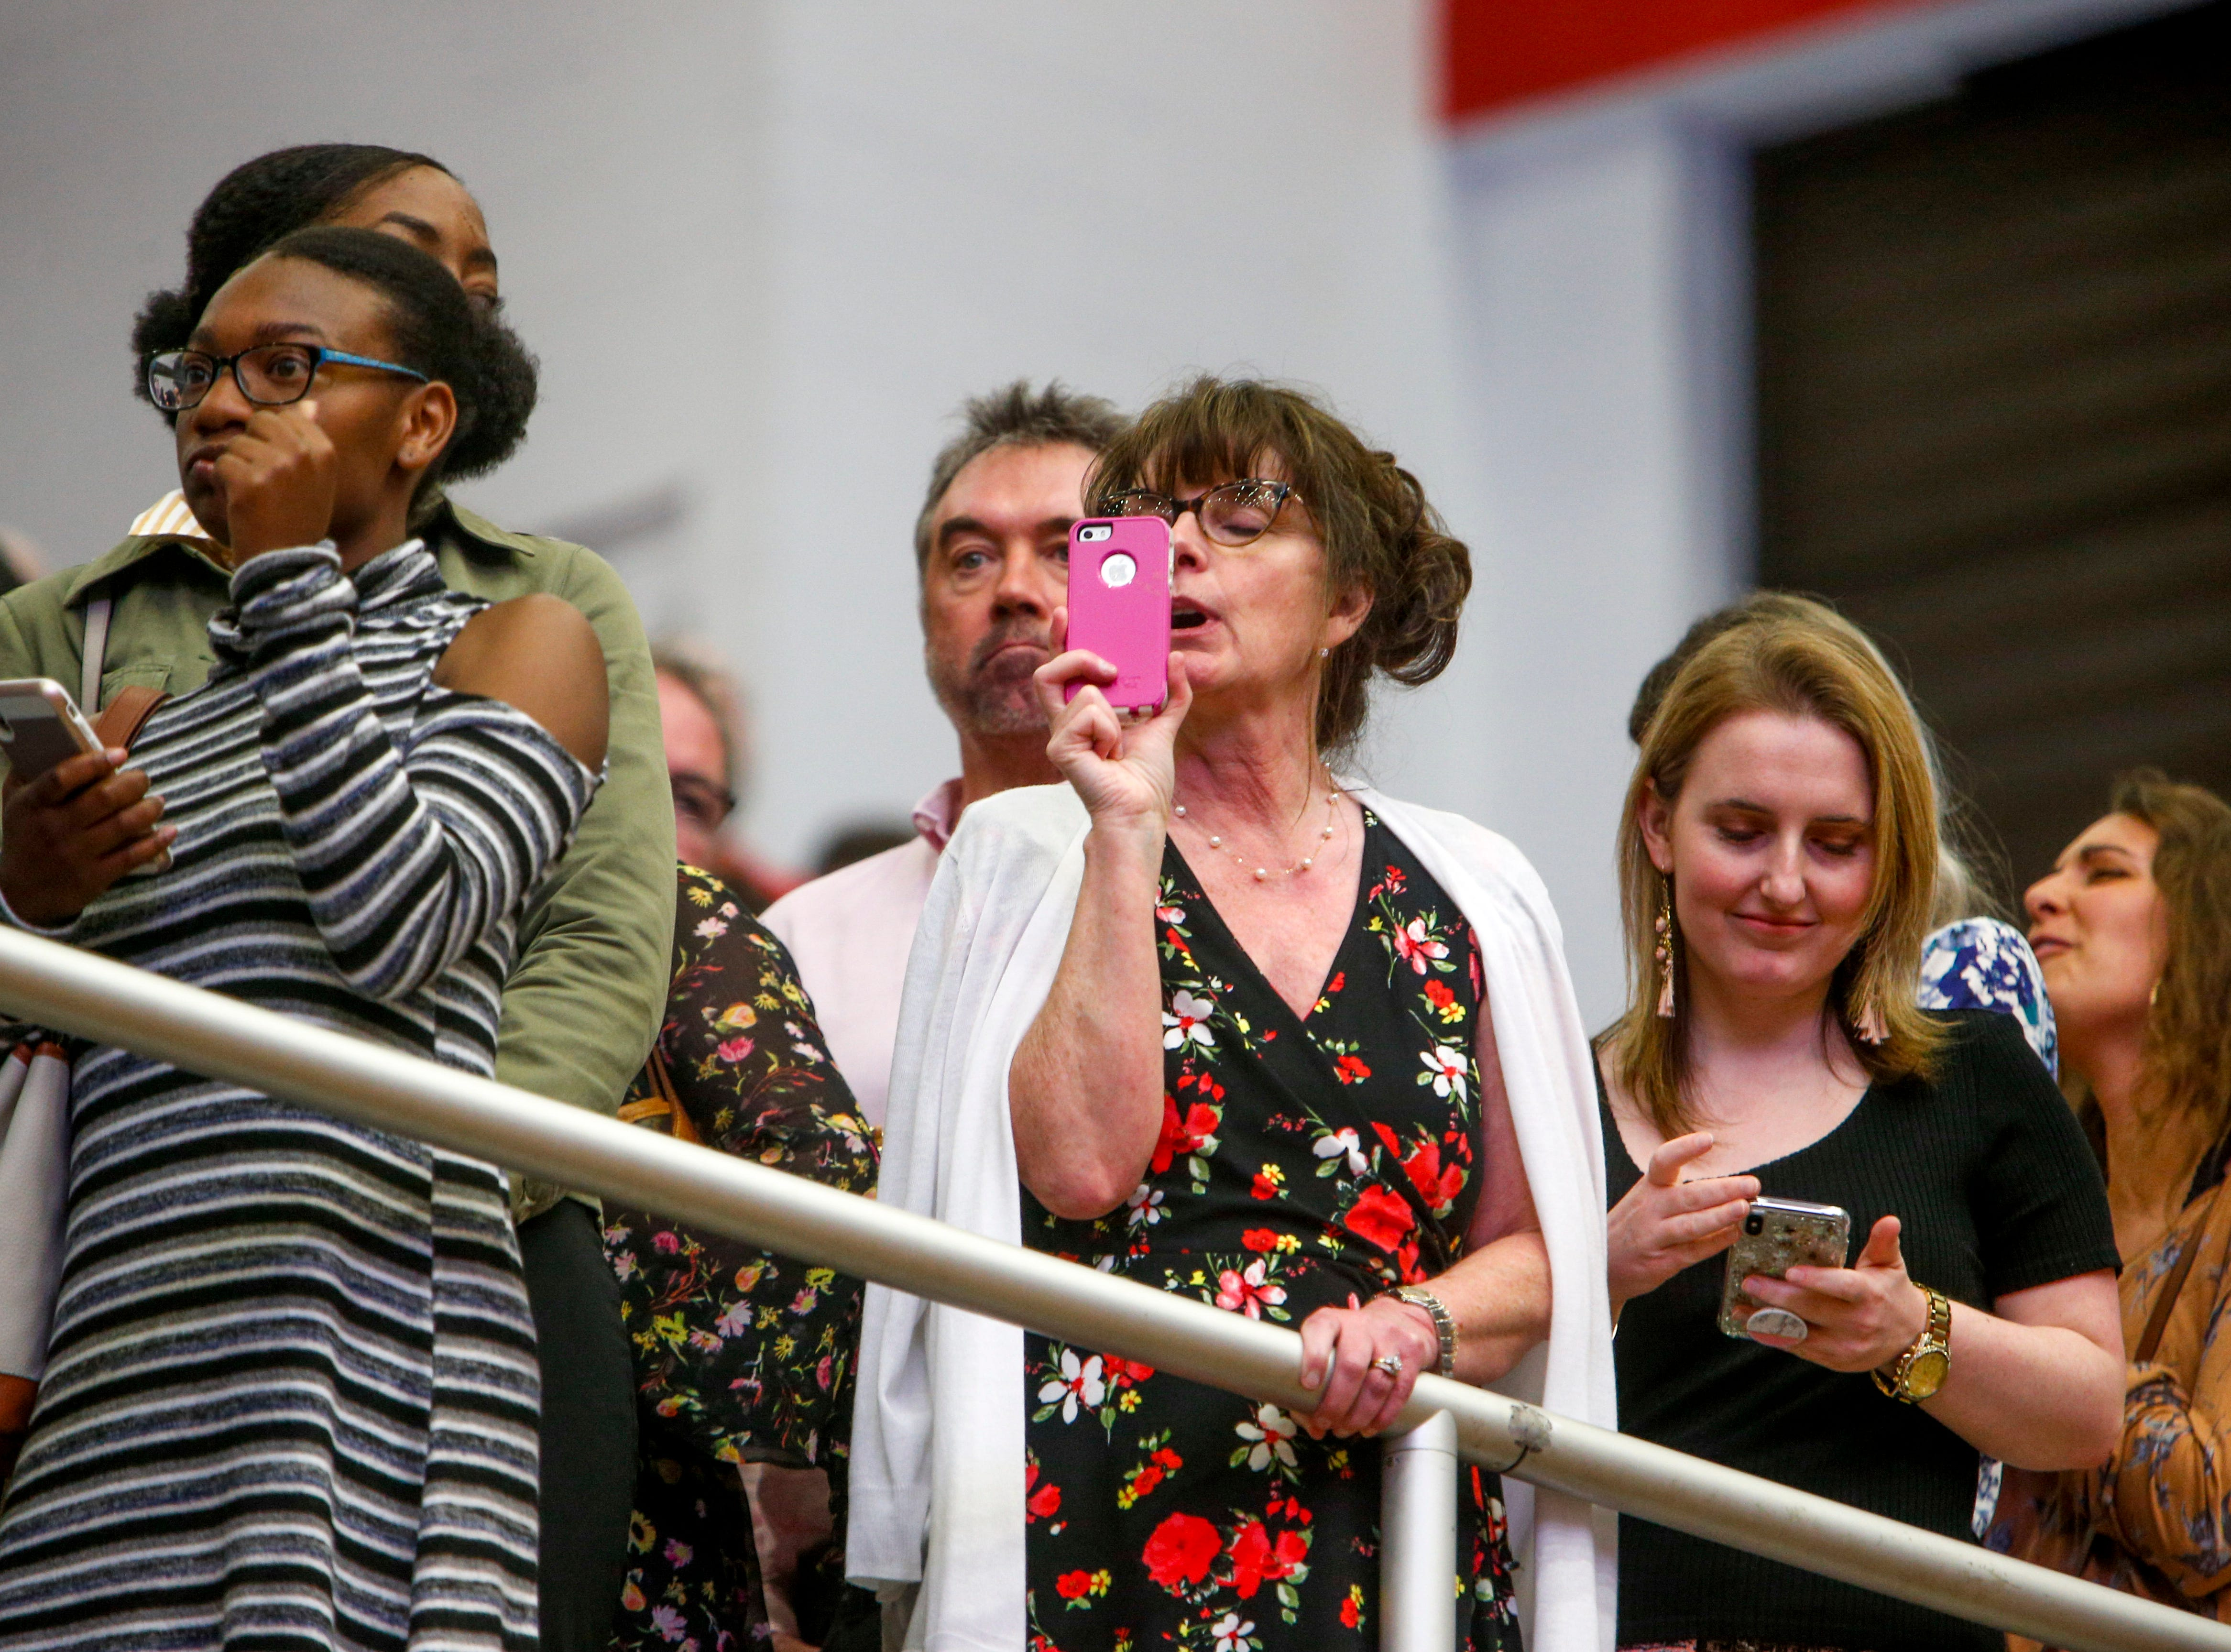 Friends and family take photo and video with cell phones at the Austin Peay spring commencement ceremony 2019 for College of Business and College of STEM at Winfield Dunn Center in Clarksville, Tenn., on Friday, May 3, 2019.